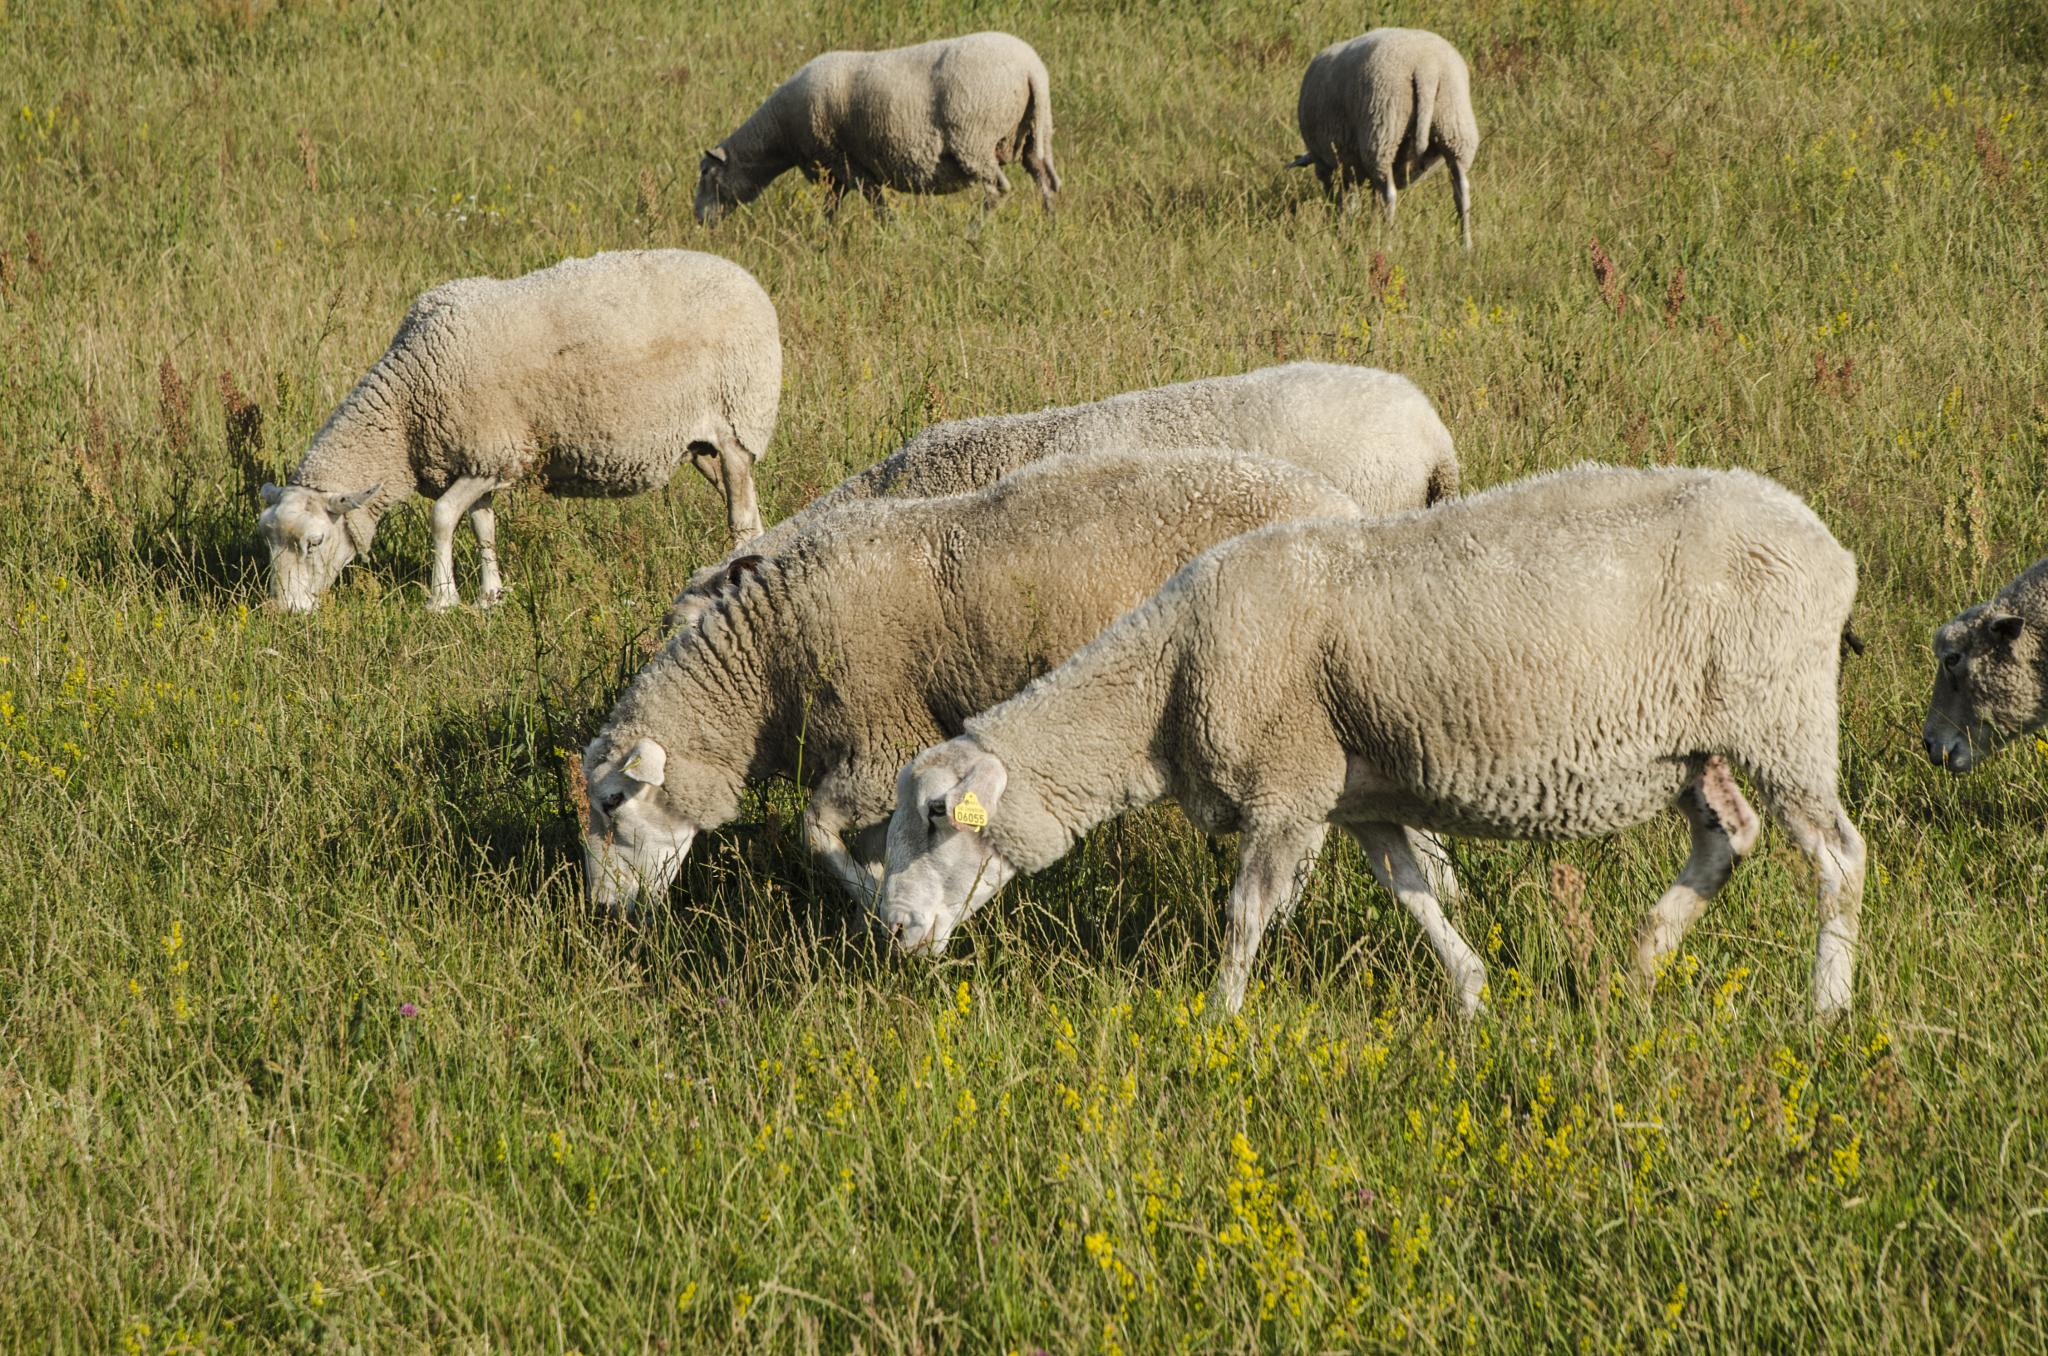 Many grazing sheep by Johnny Lythell